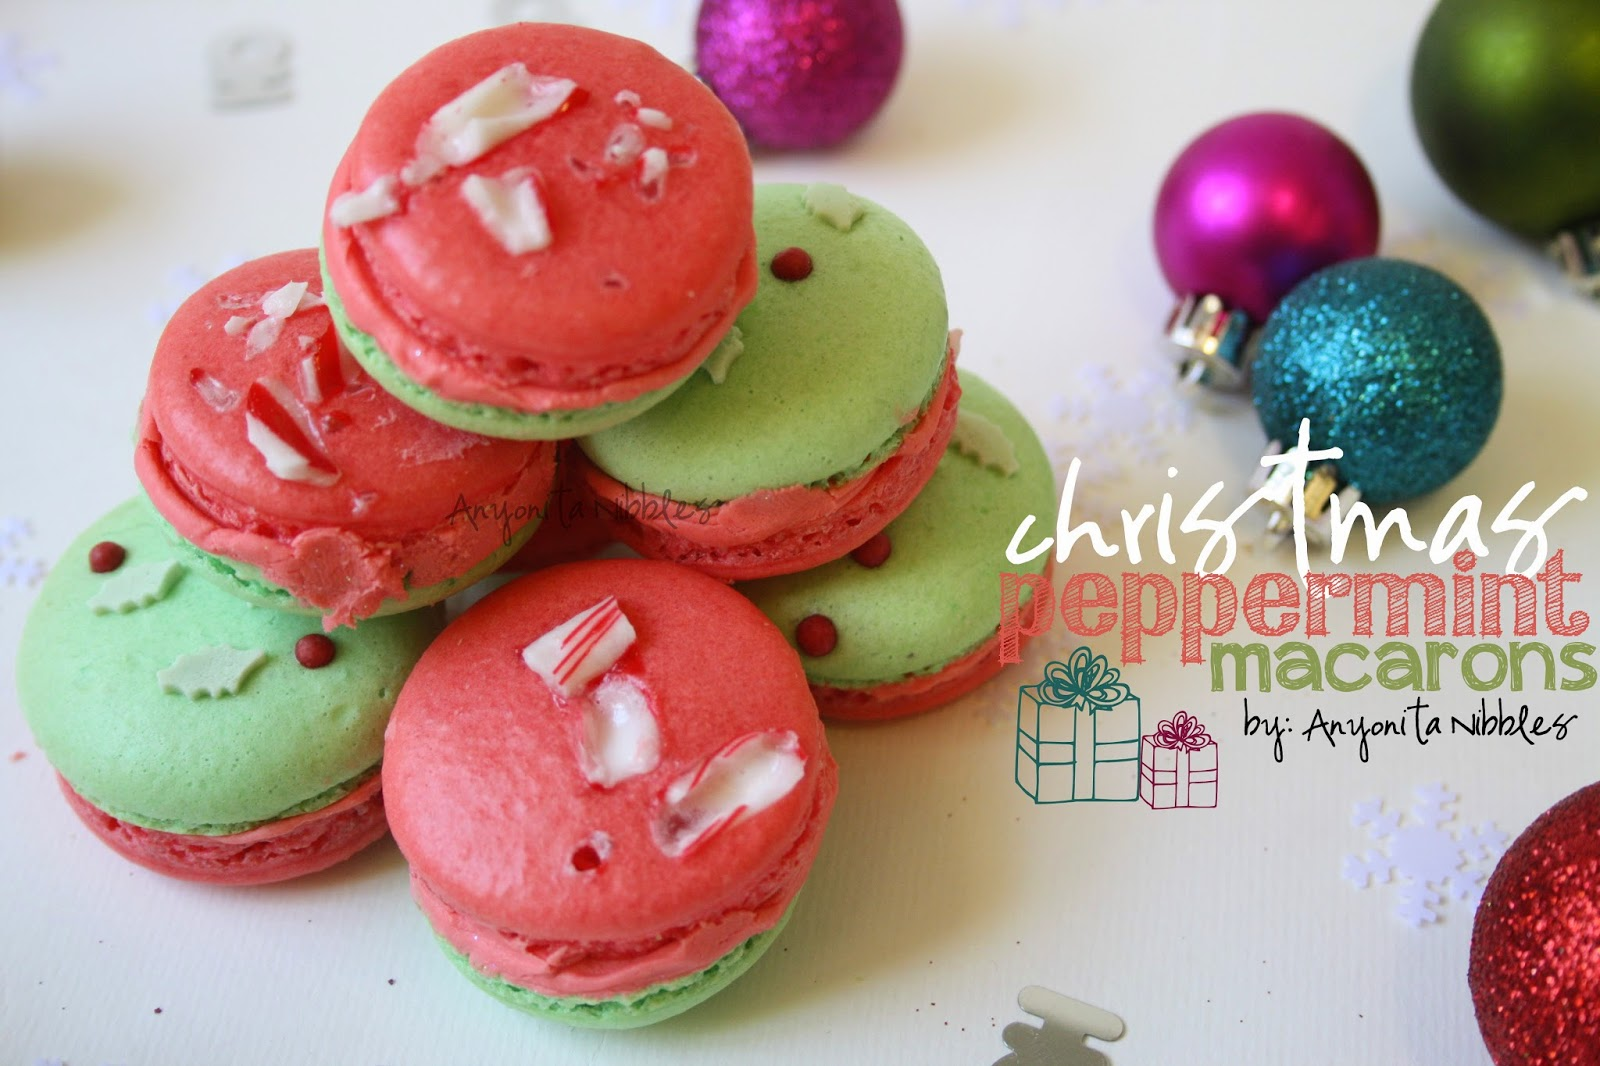 Christmas Peppermint Macarons from Anyonita-nibbles.co.uk